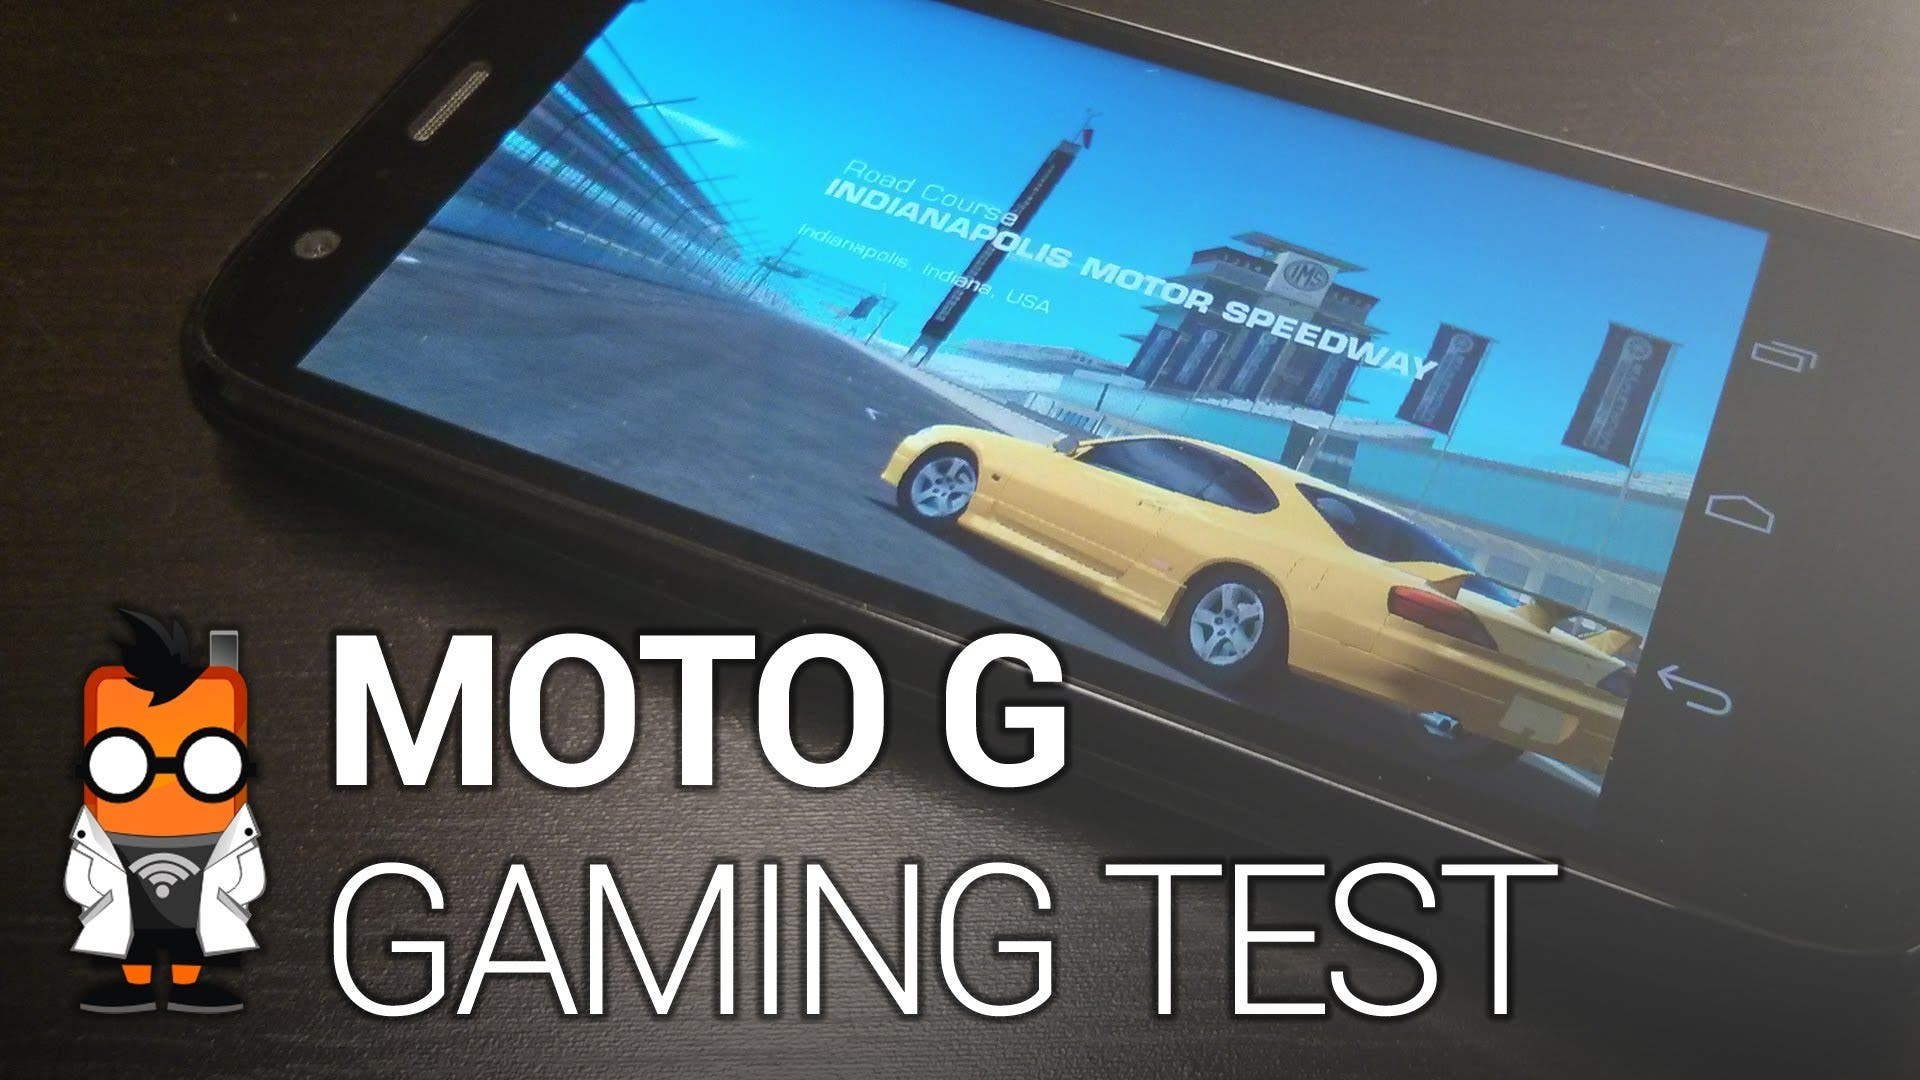 Moto G Gaming Test